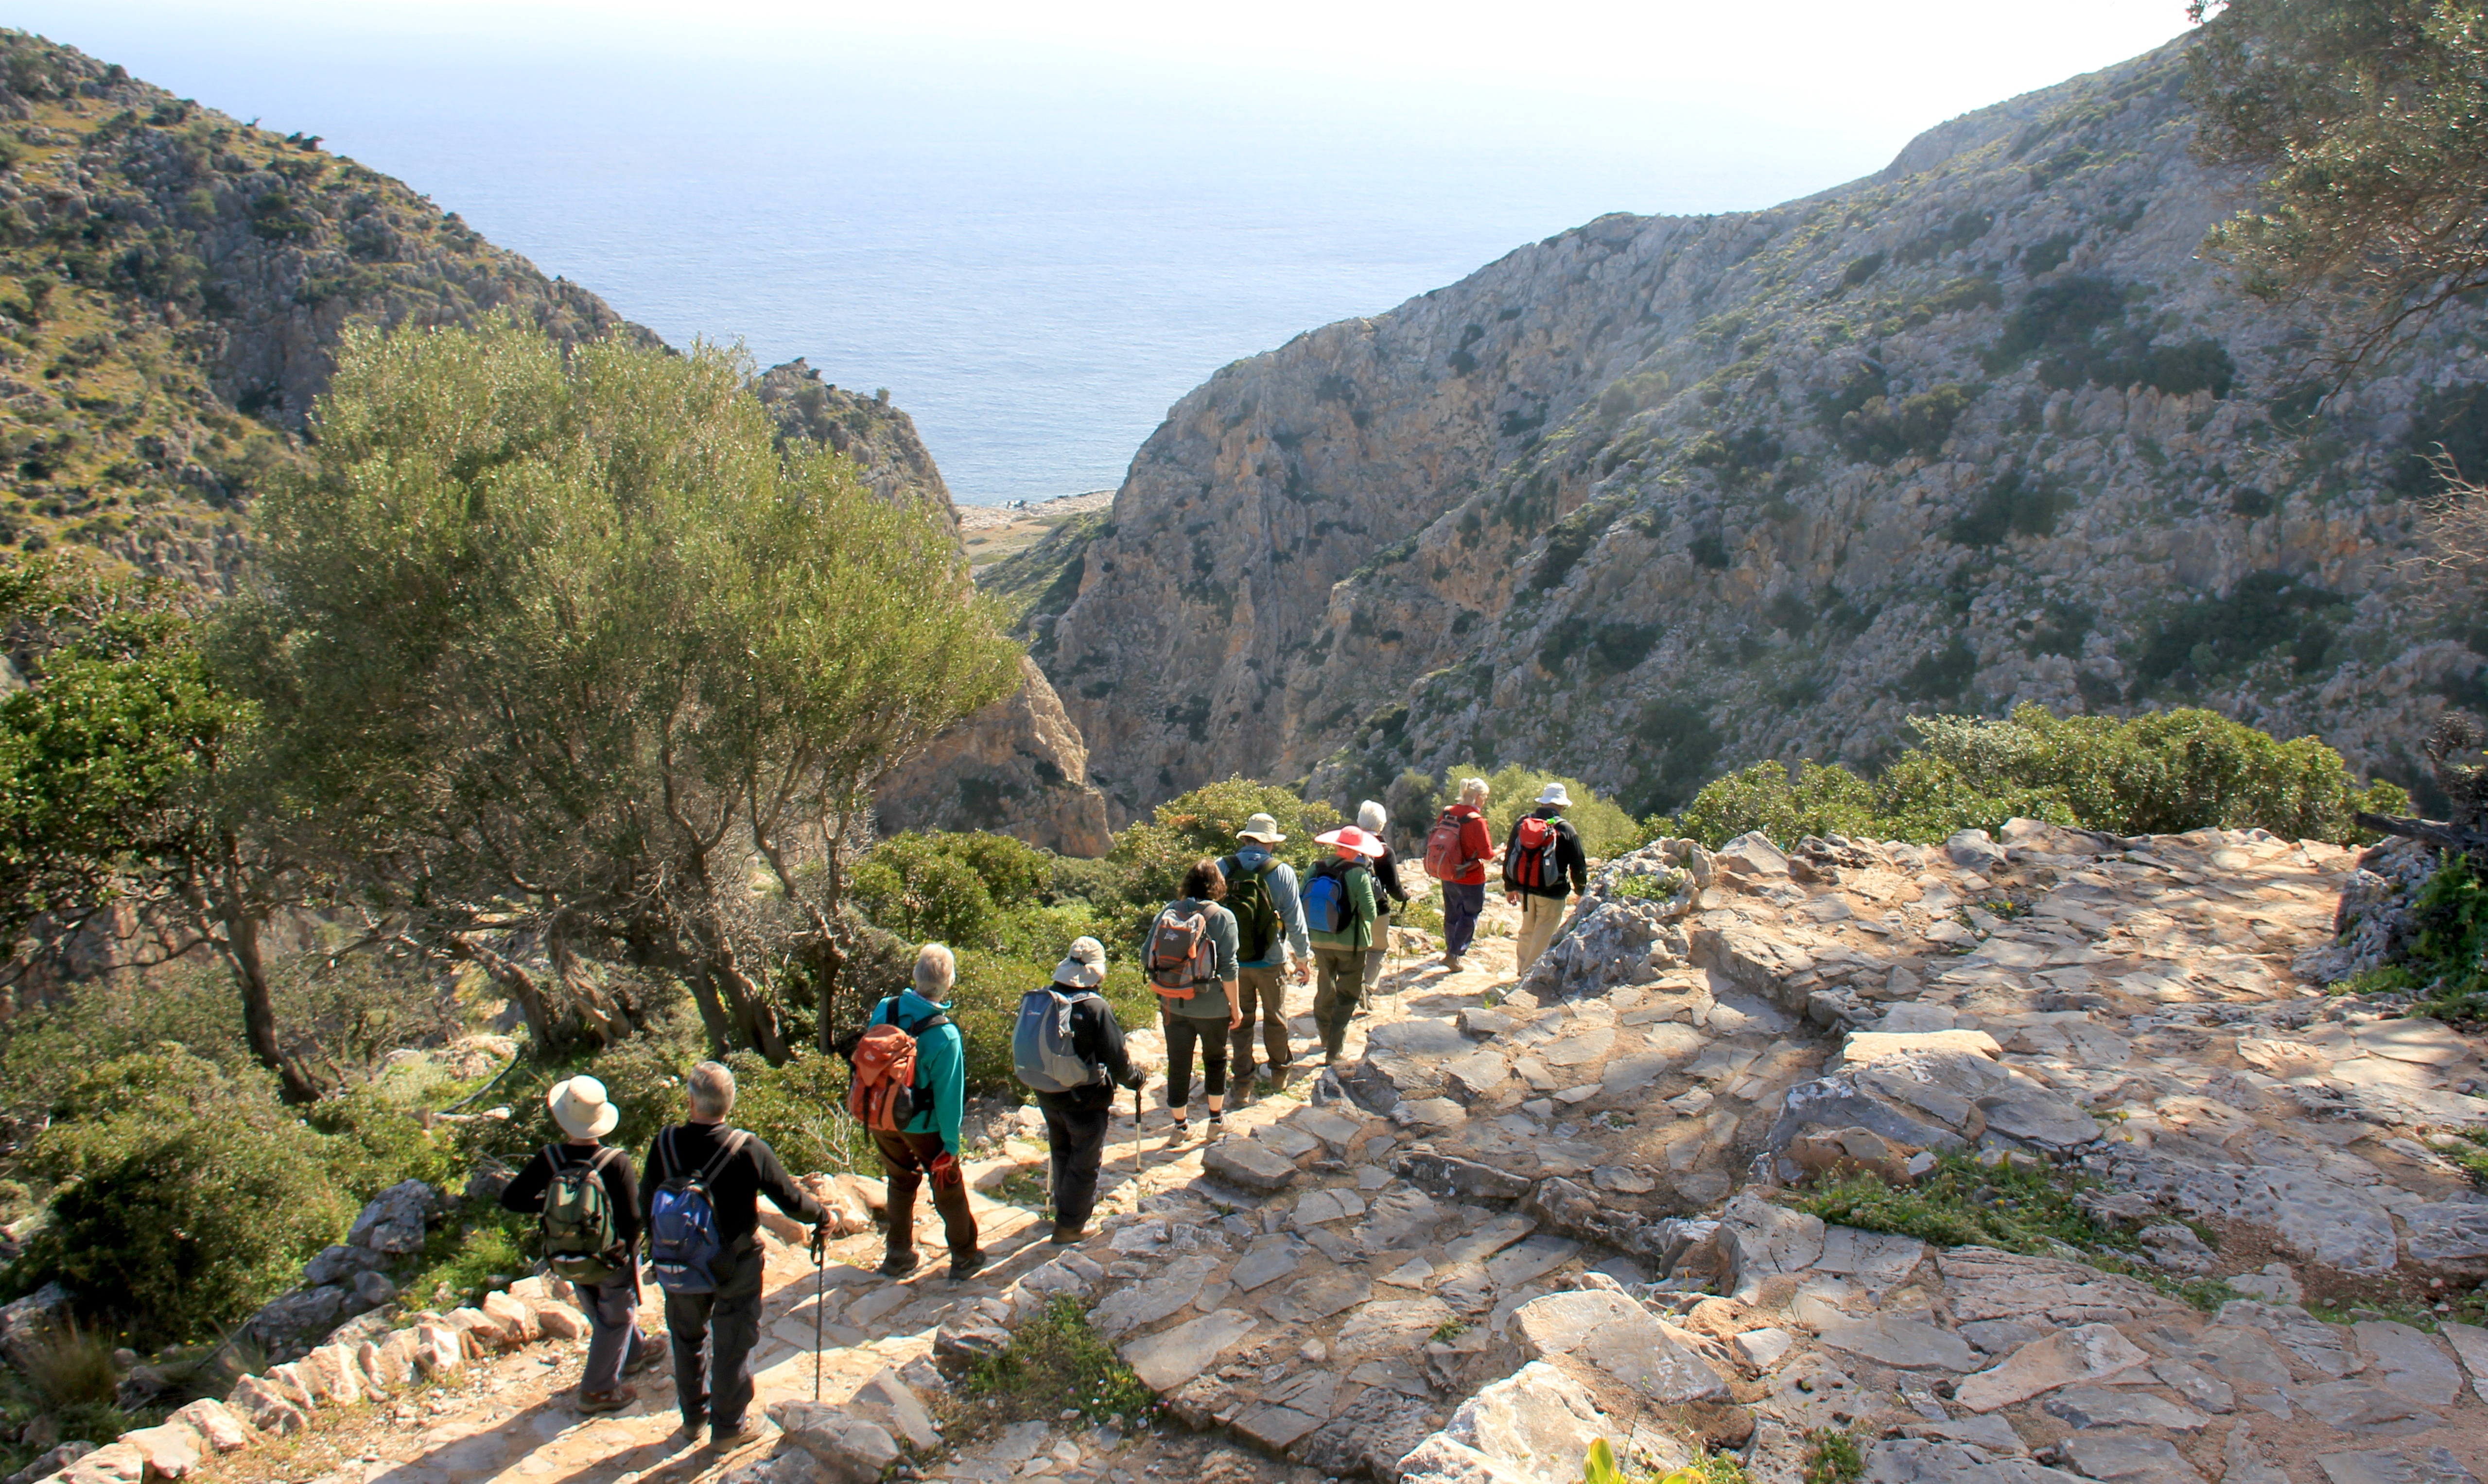 Gorge walk in Western Crete